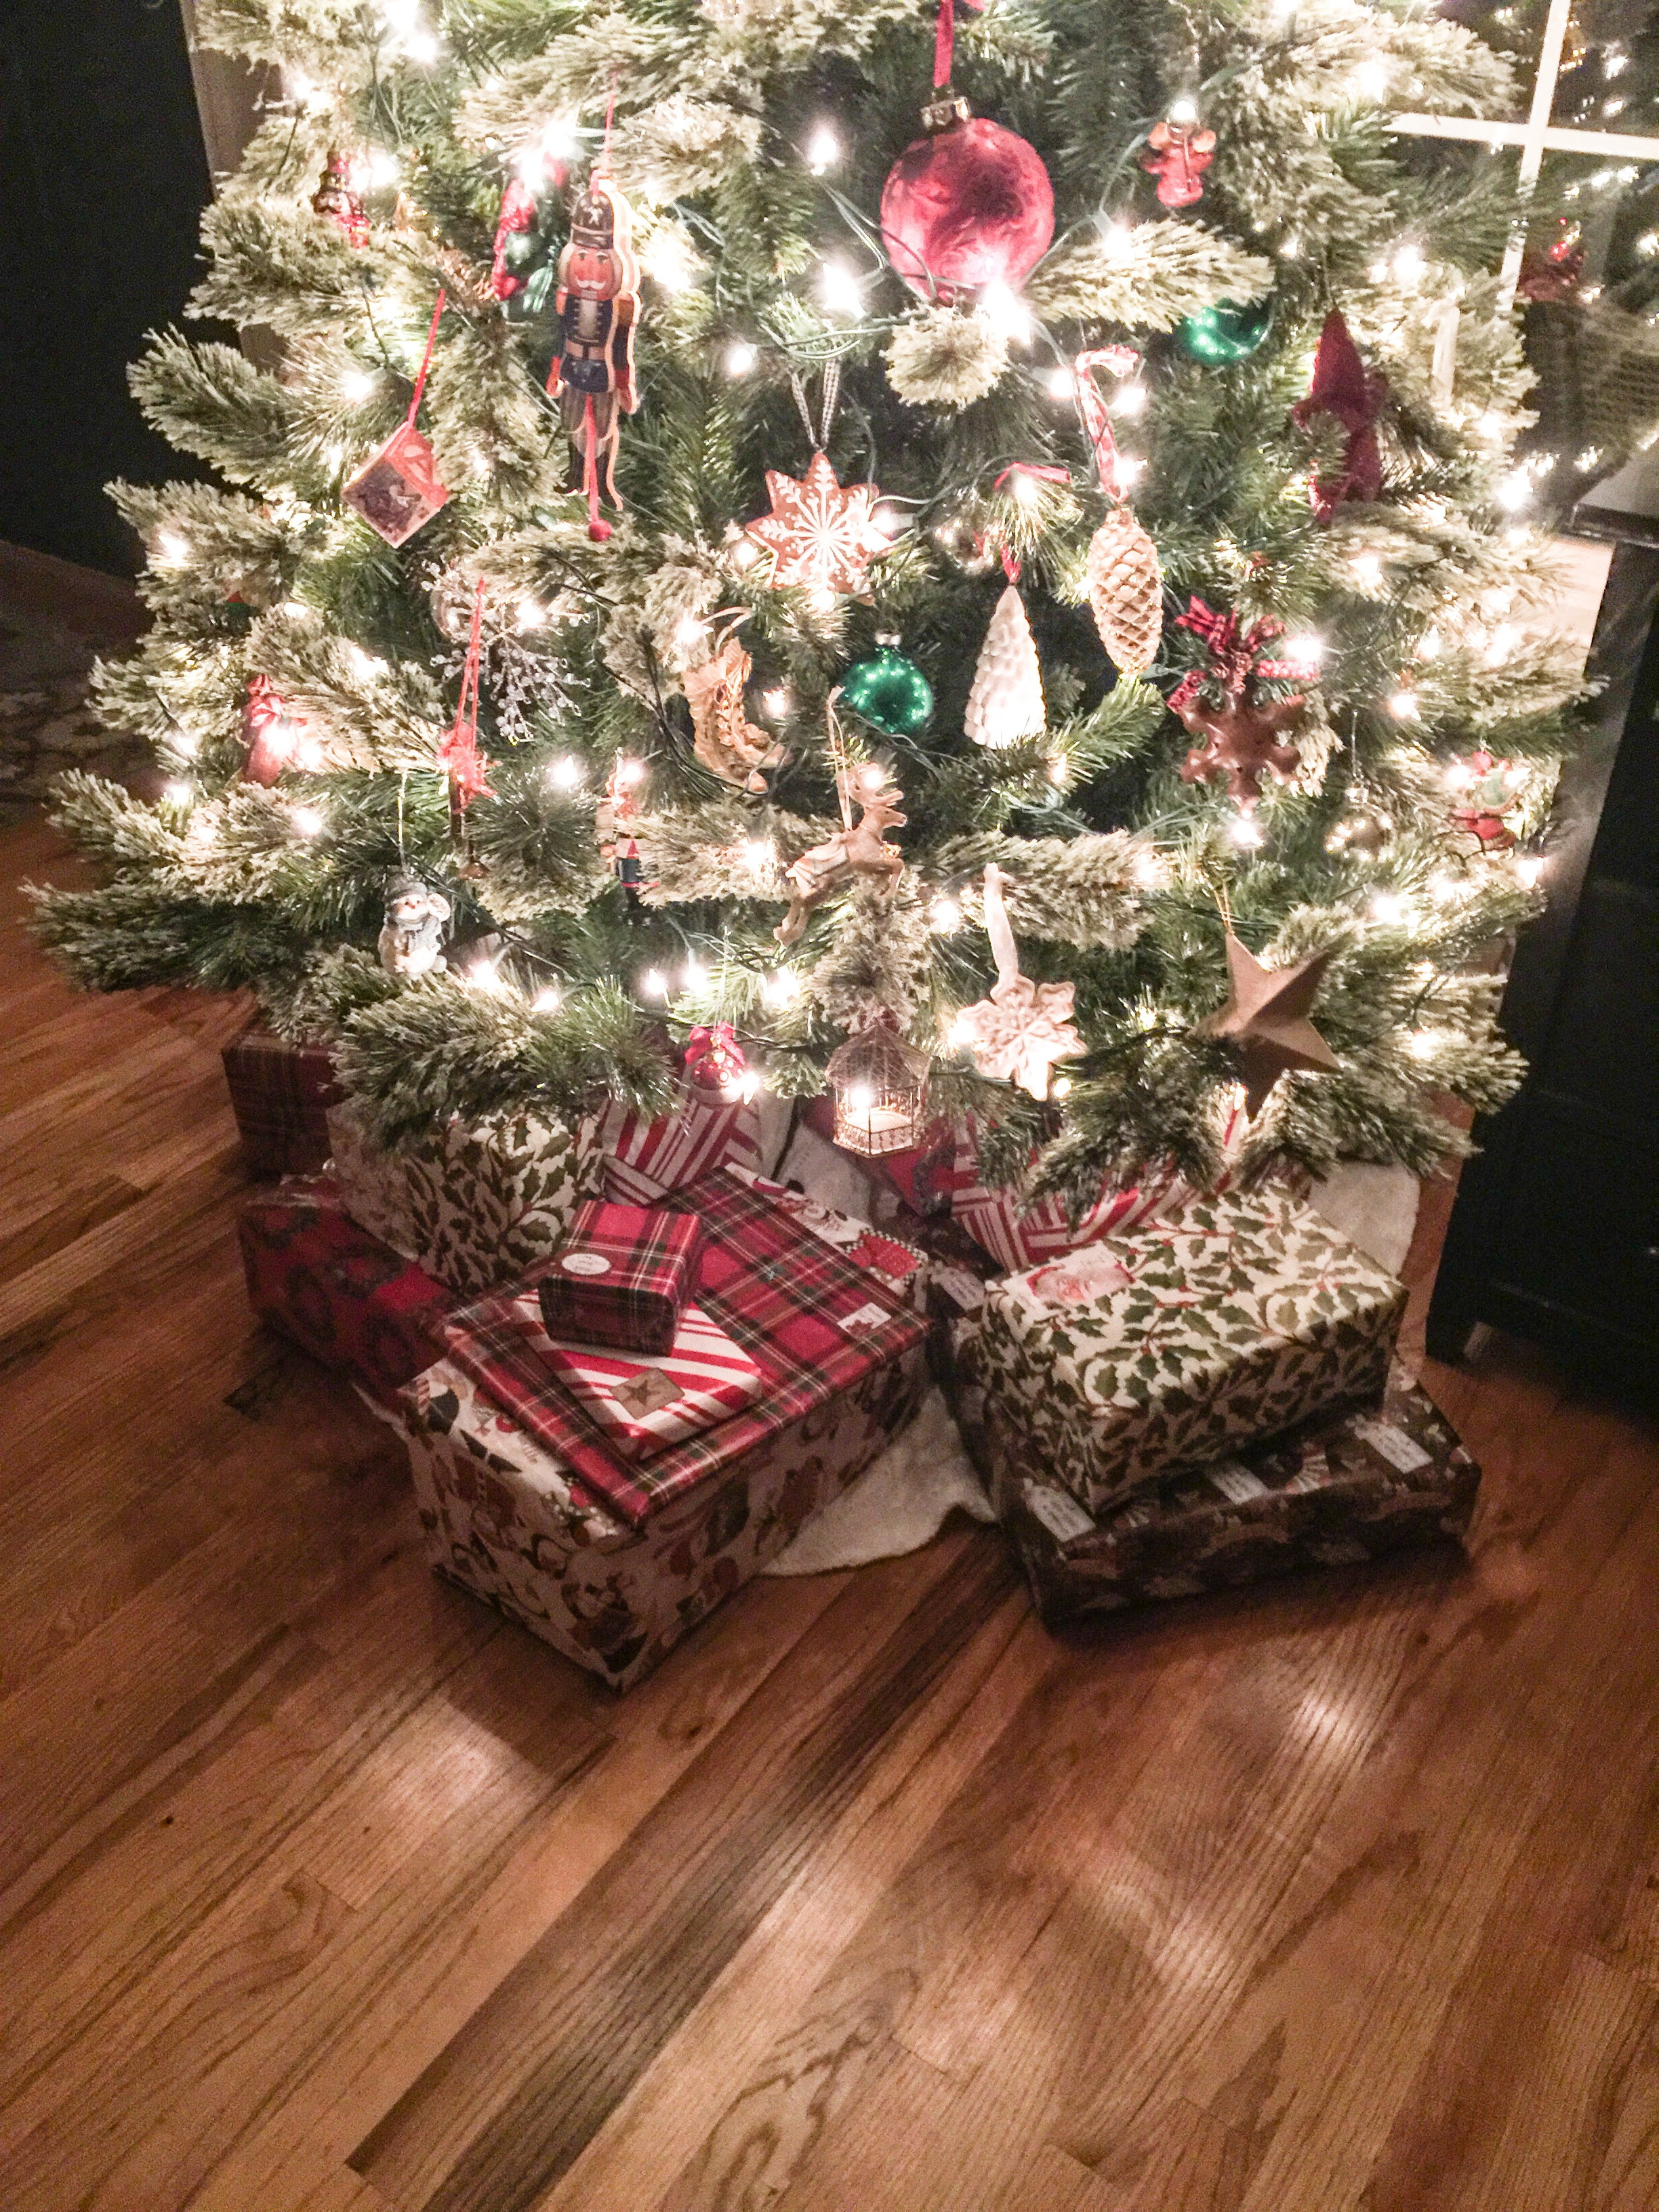 On The Eve Of Christmas Eve………….